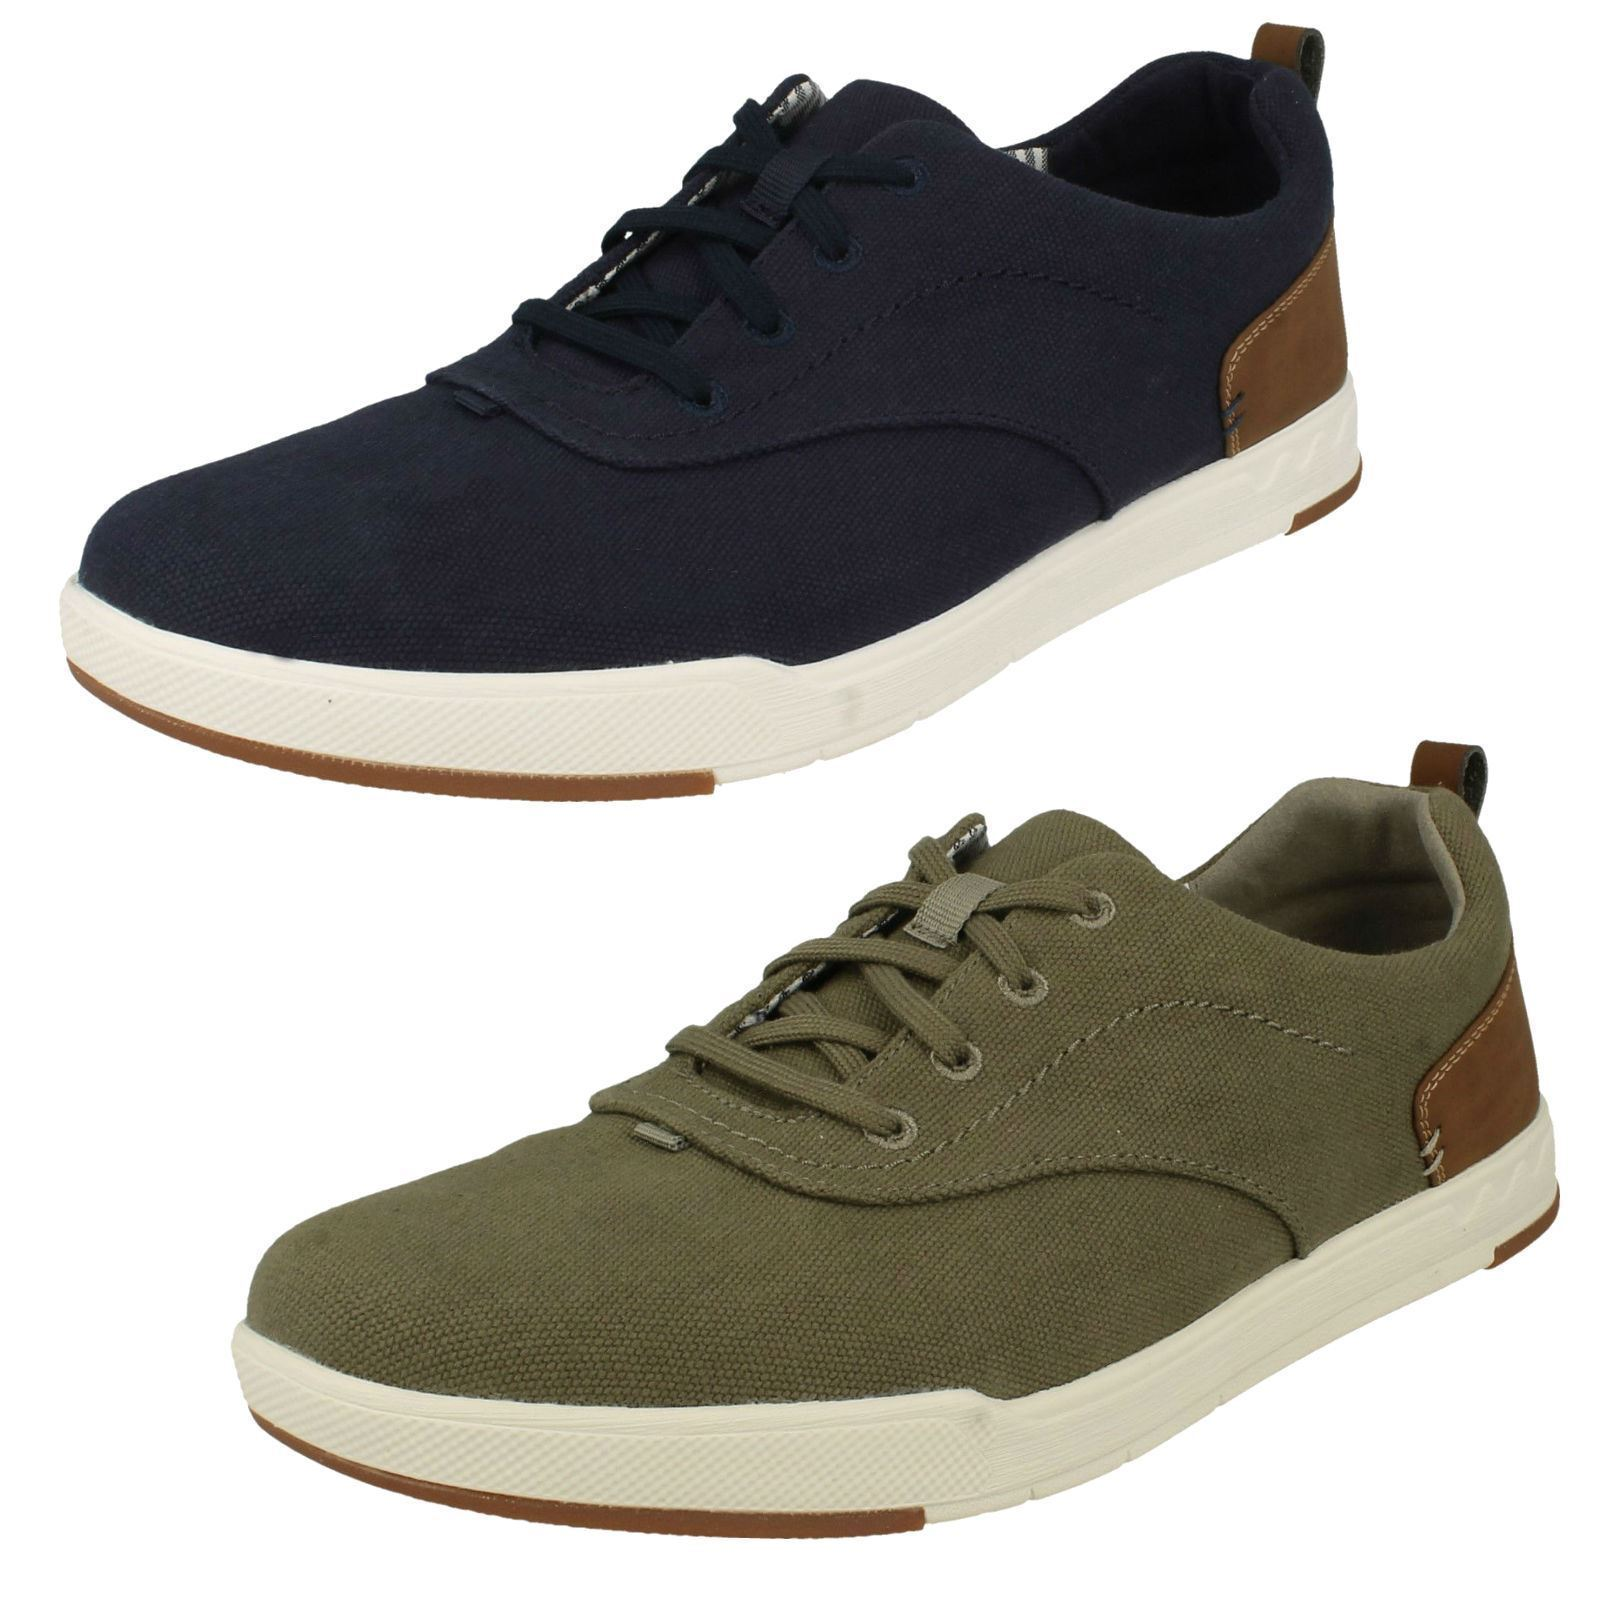 MENS CLARKS CLOUDSTEPPERS STEP ISLE CREW CANVAS CASUAL LACE SHOES